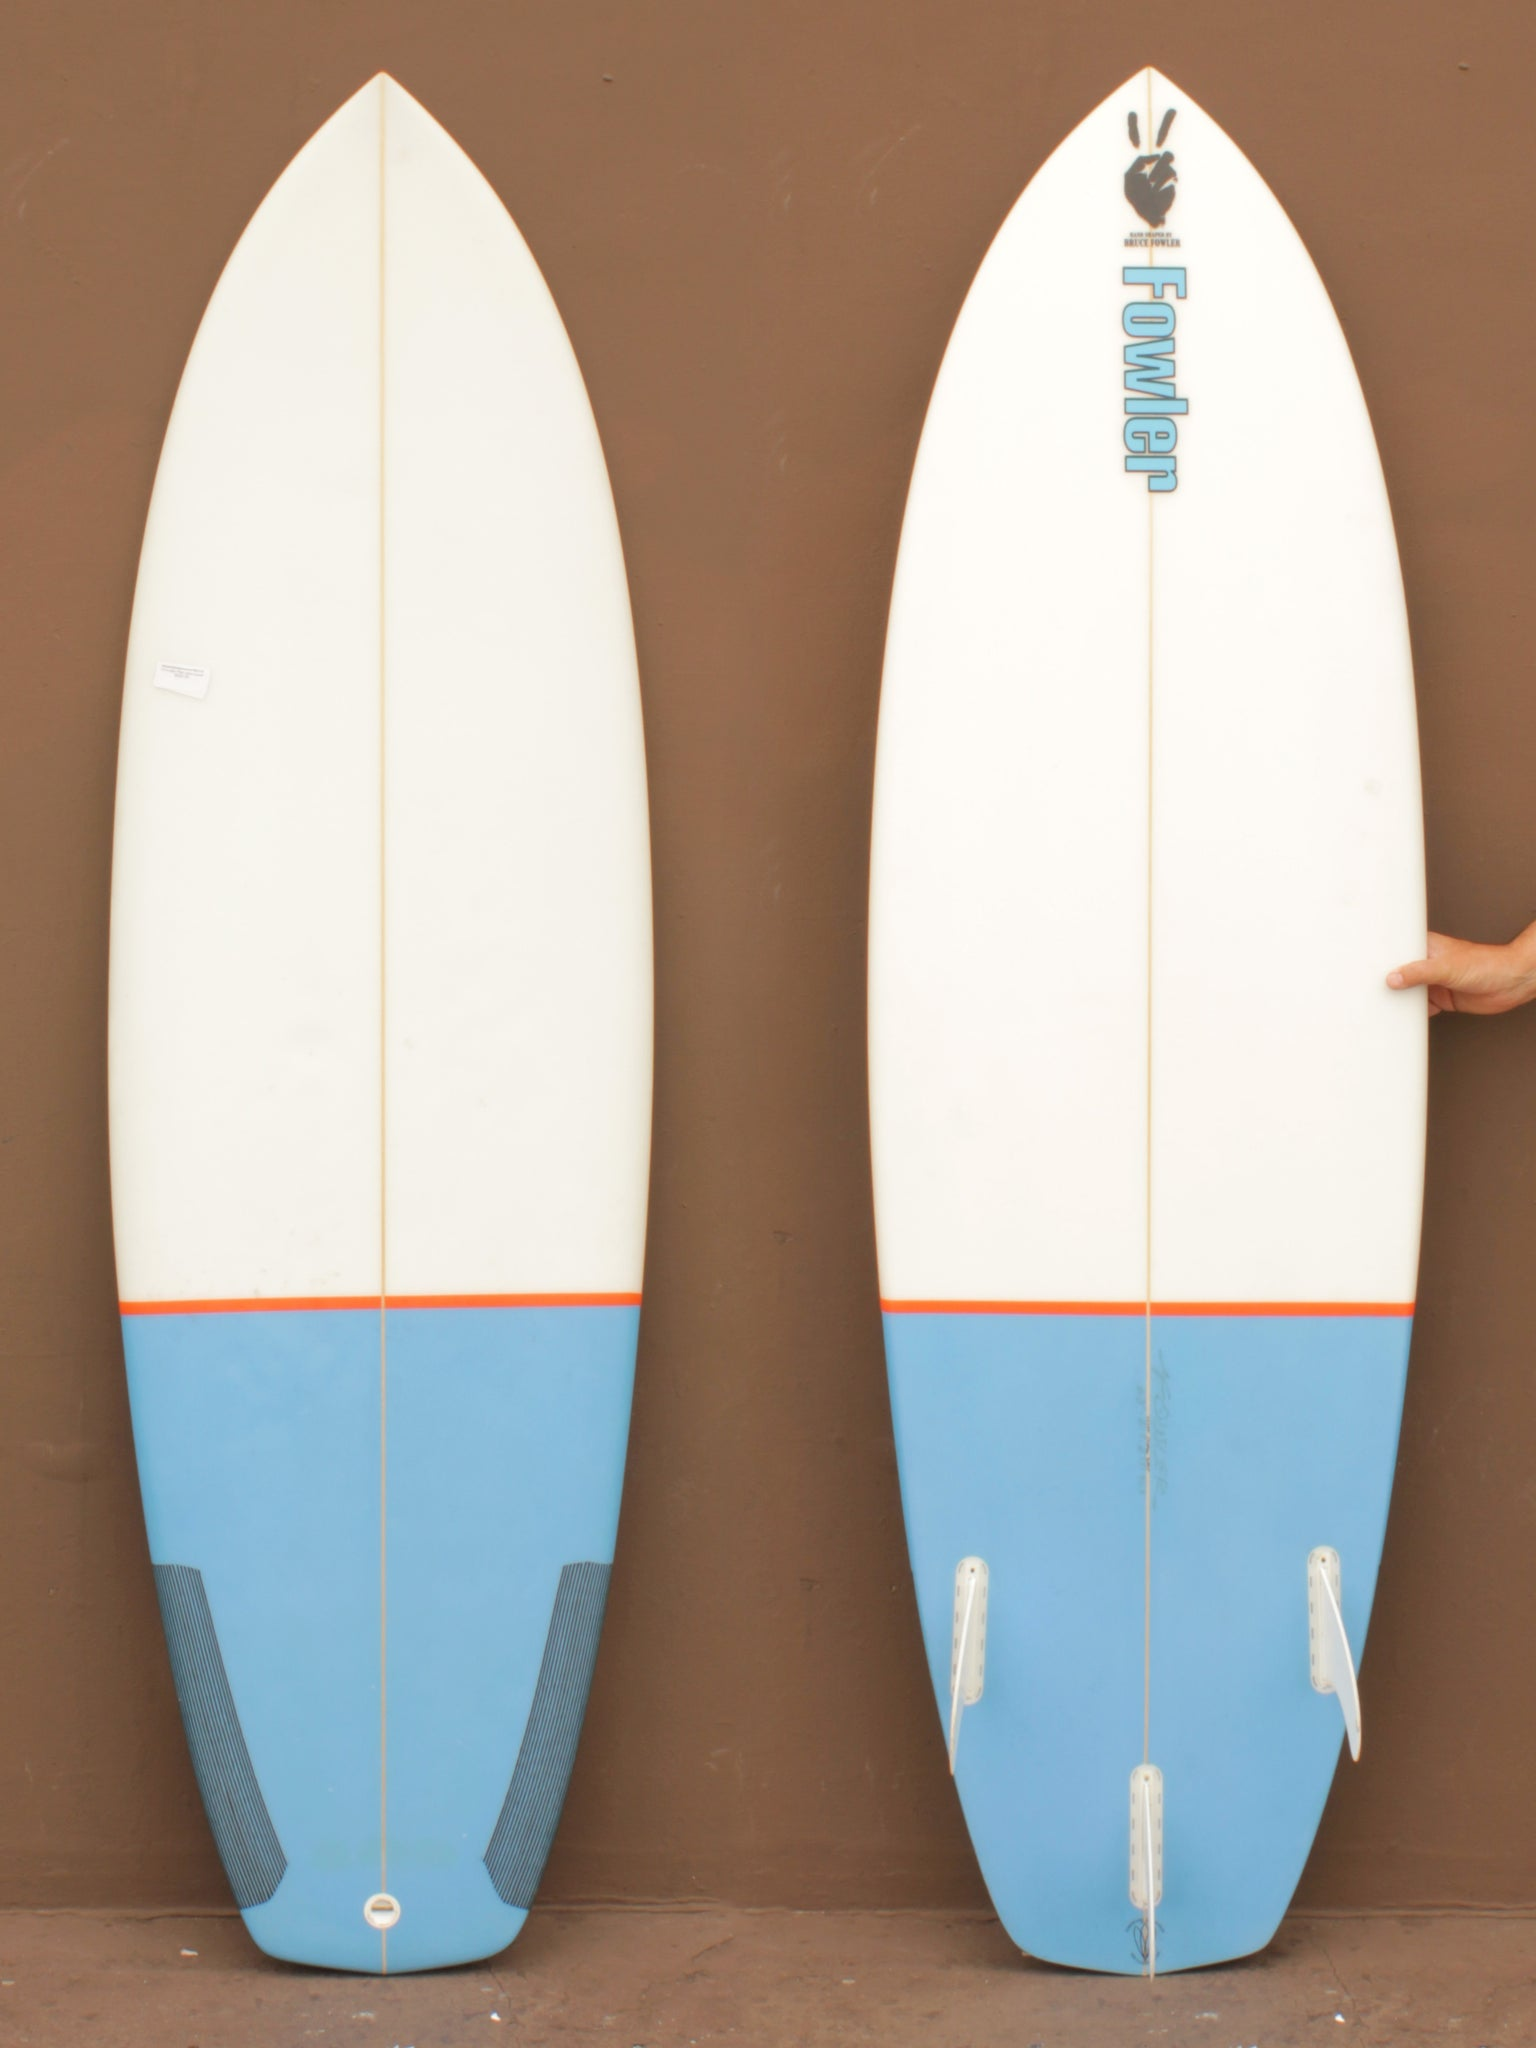 6'3 Fowler Plain Jane (Used)